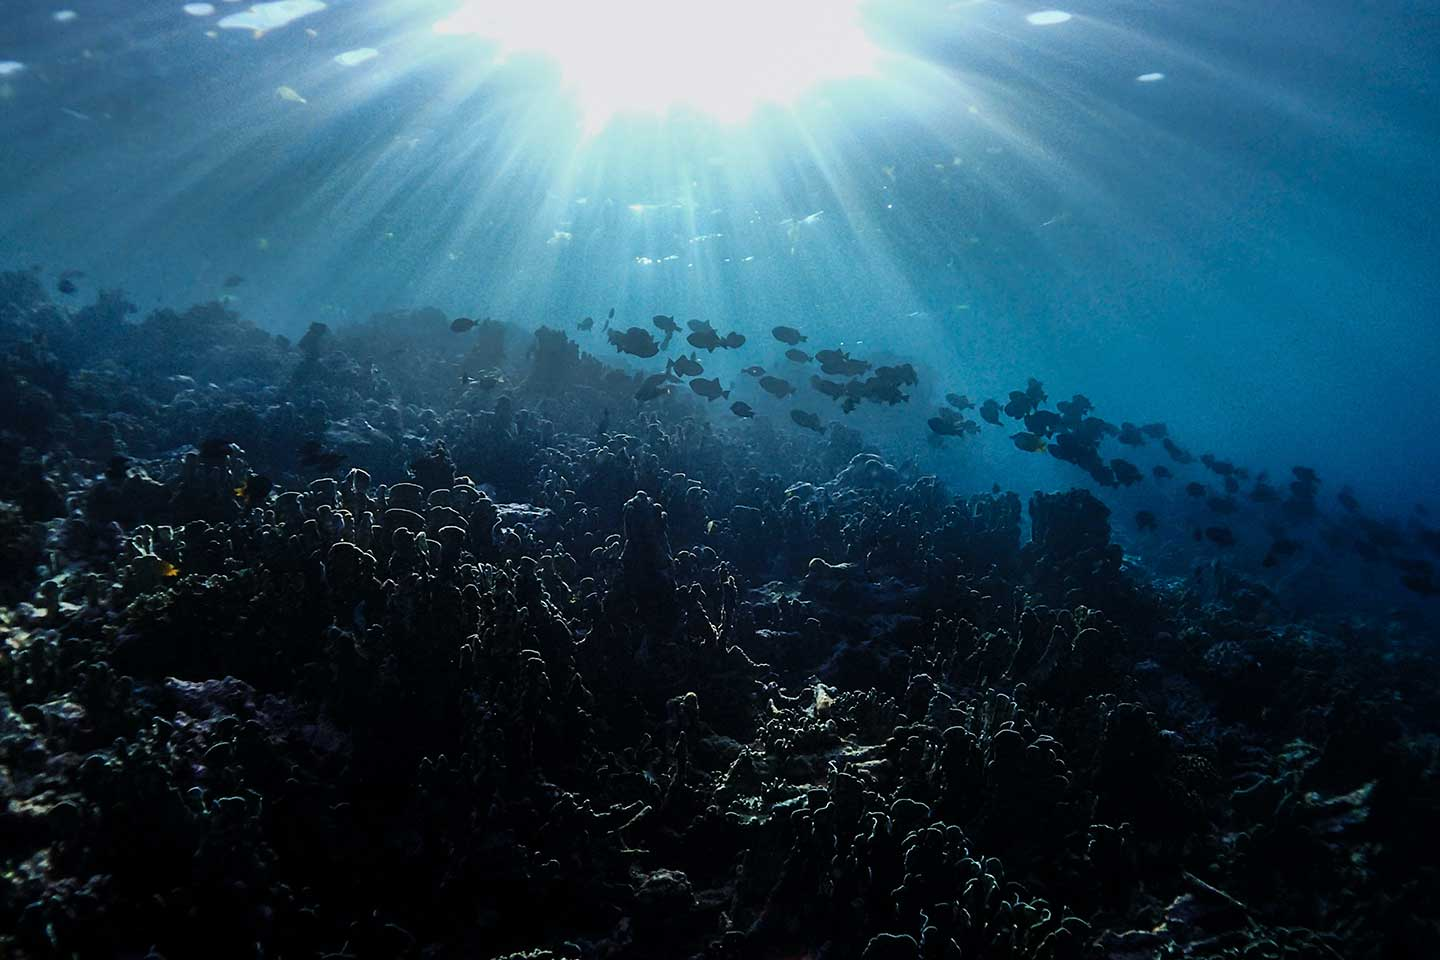 How to take underwater photos using natural light